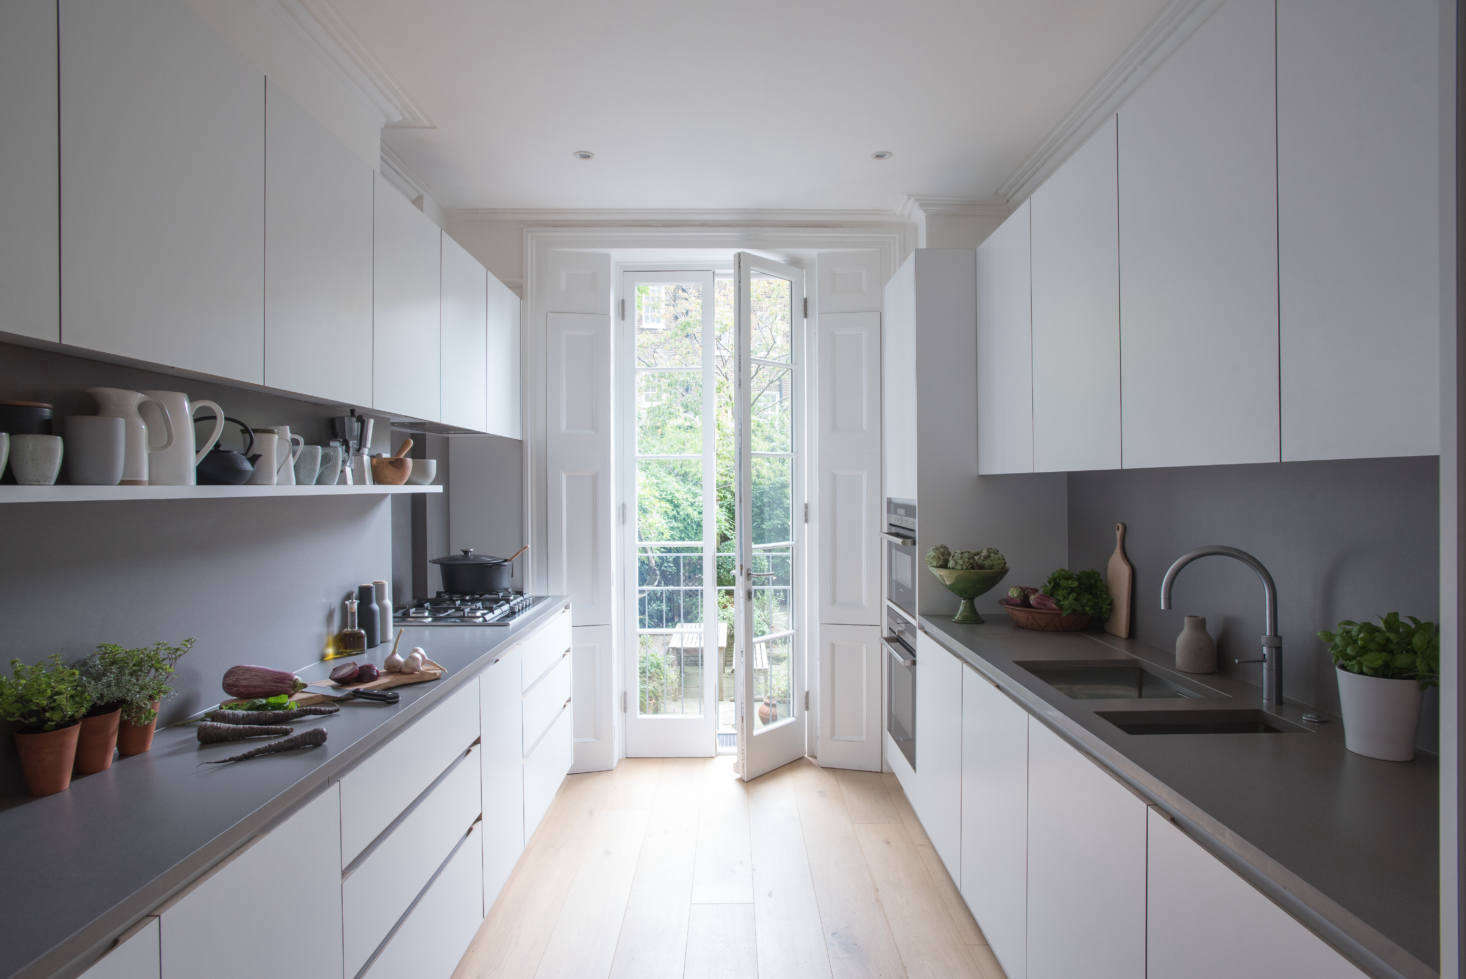 Composed of streamlined cabinets of laminate-clad MDF with oak edging, the kitchen has windows at either end: the French doors open to an eating area and garden. The design is known as the JT Original.